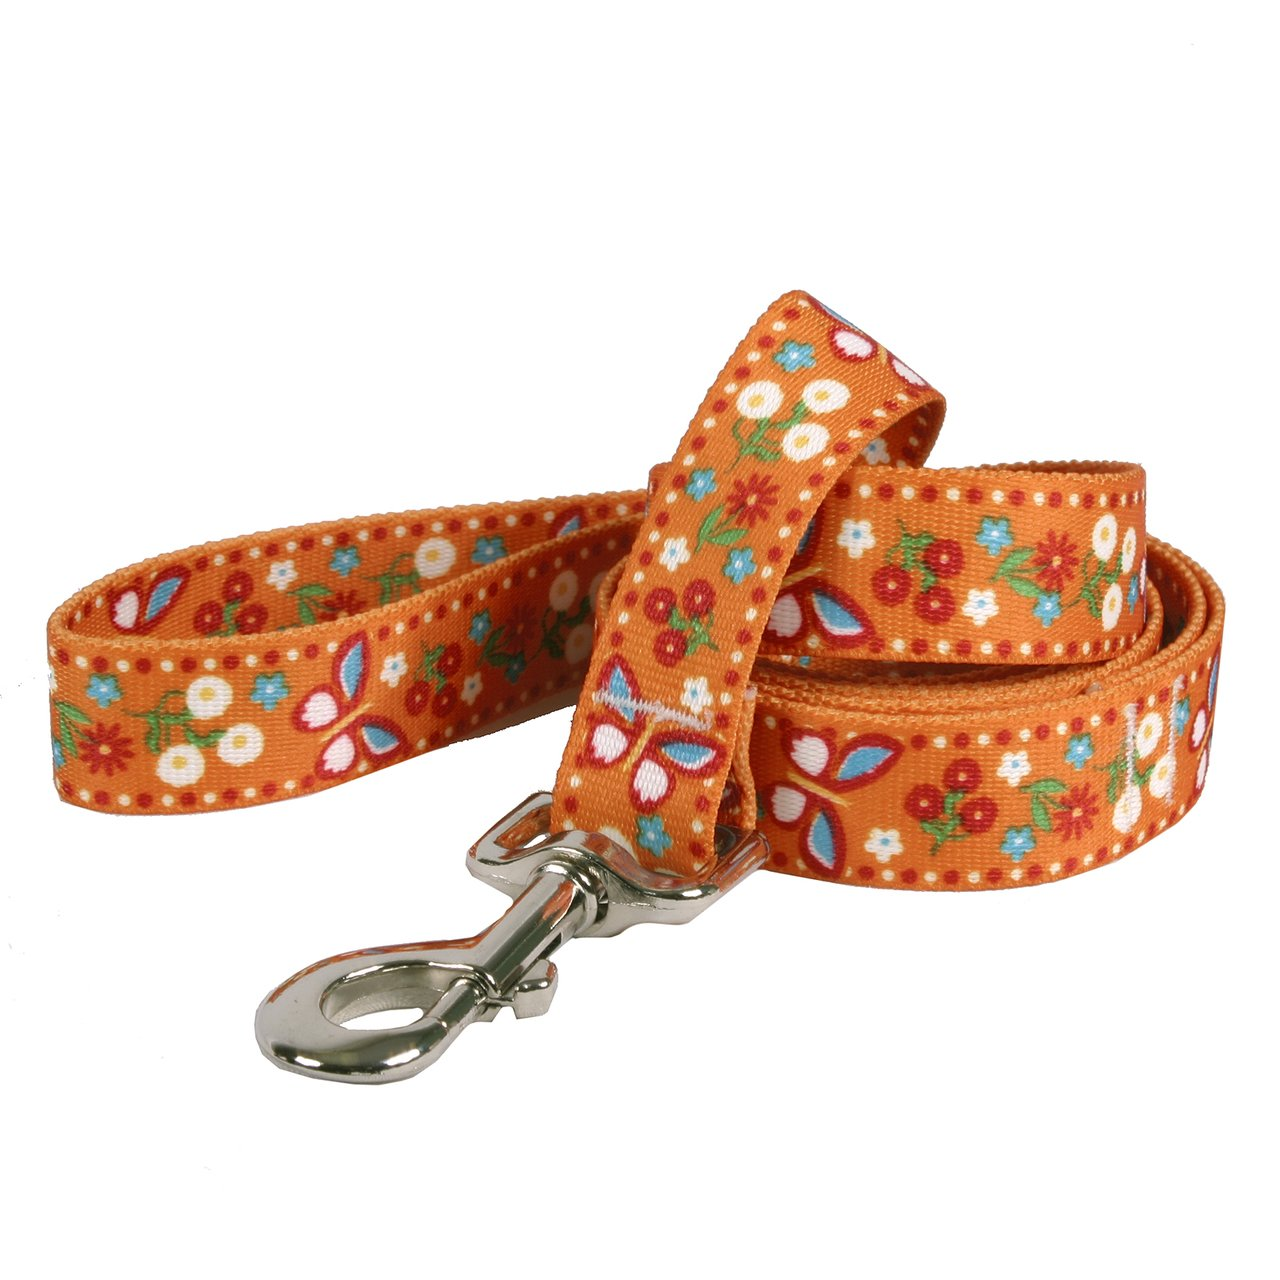 Yellow Dog Design Festive Butterfly Orange Dog Leash 3/8'' Wide and 5' (60'') Long, X-Large